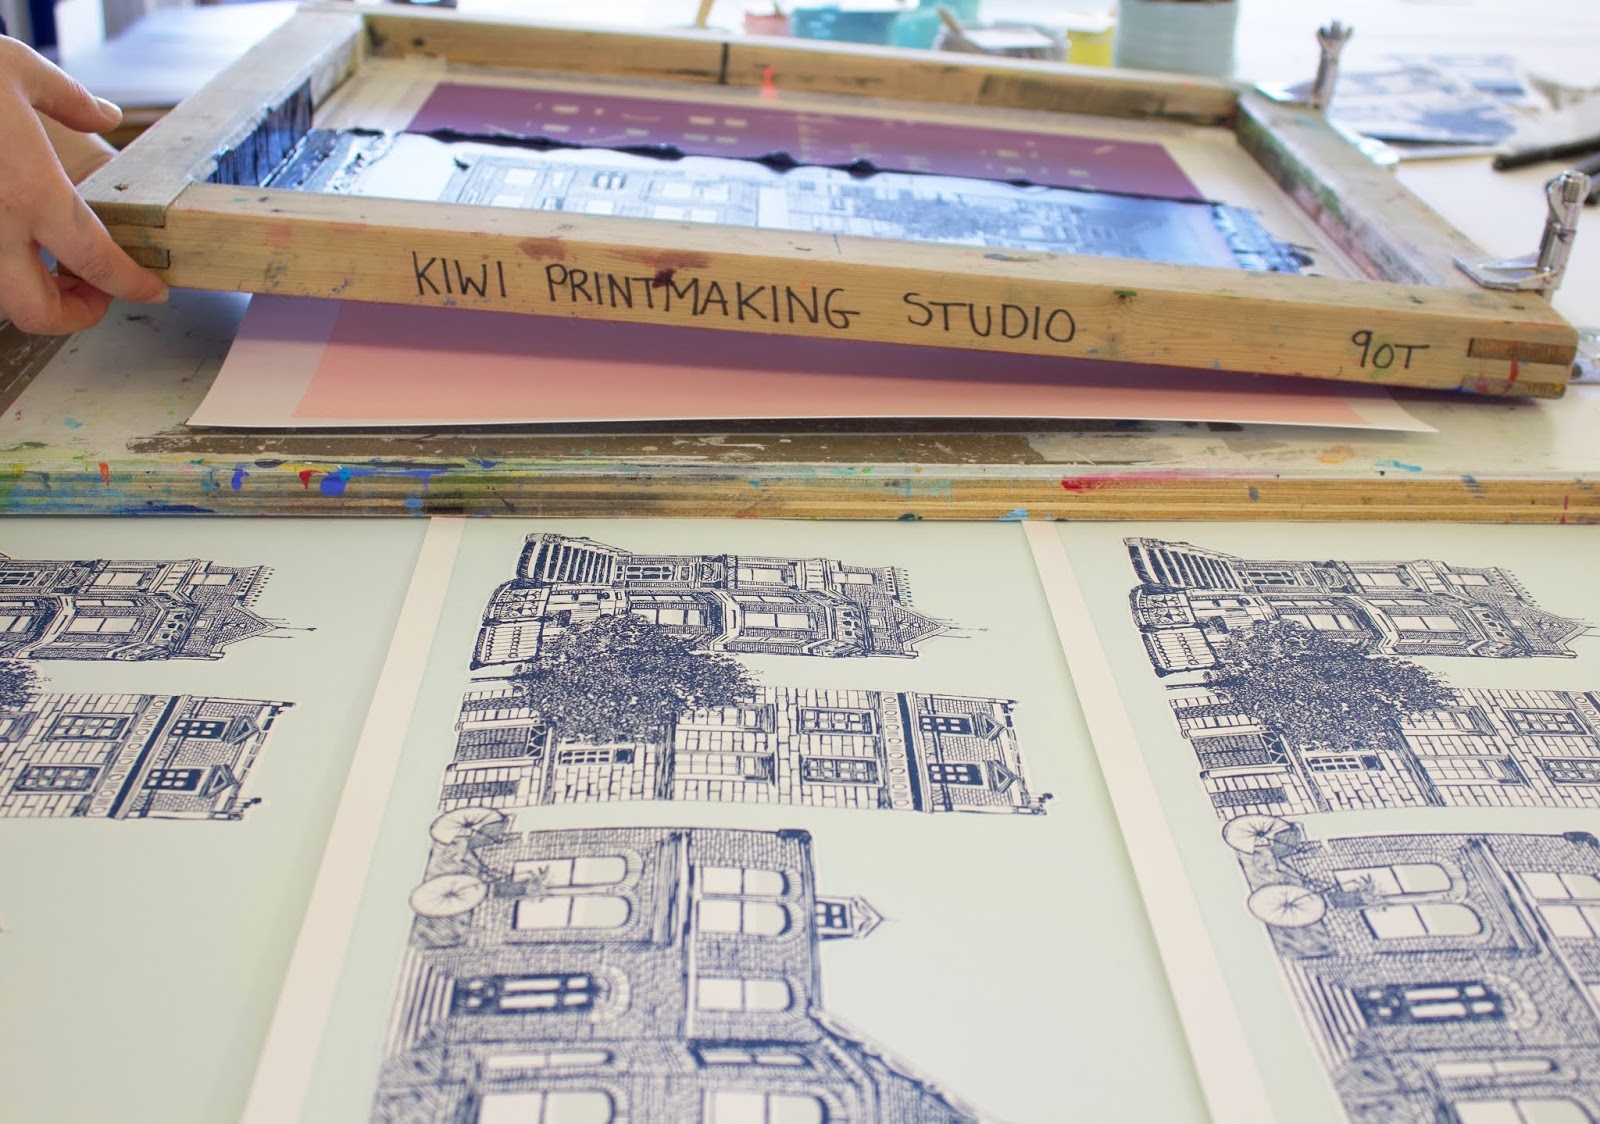 4bbb6502 Join us in our fully equipped screen printing studio located in Cornwall  surrounded by beautiful scenery. In our four day intensive screen printing  course ...